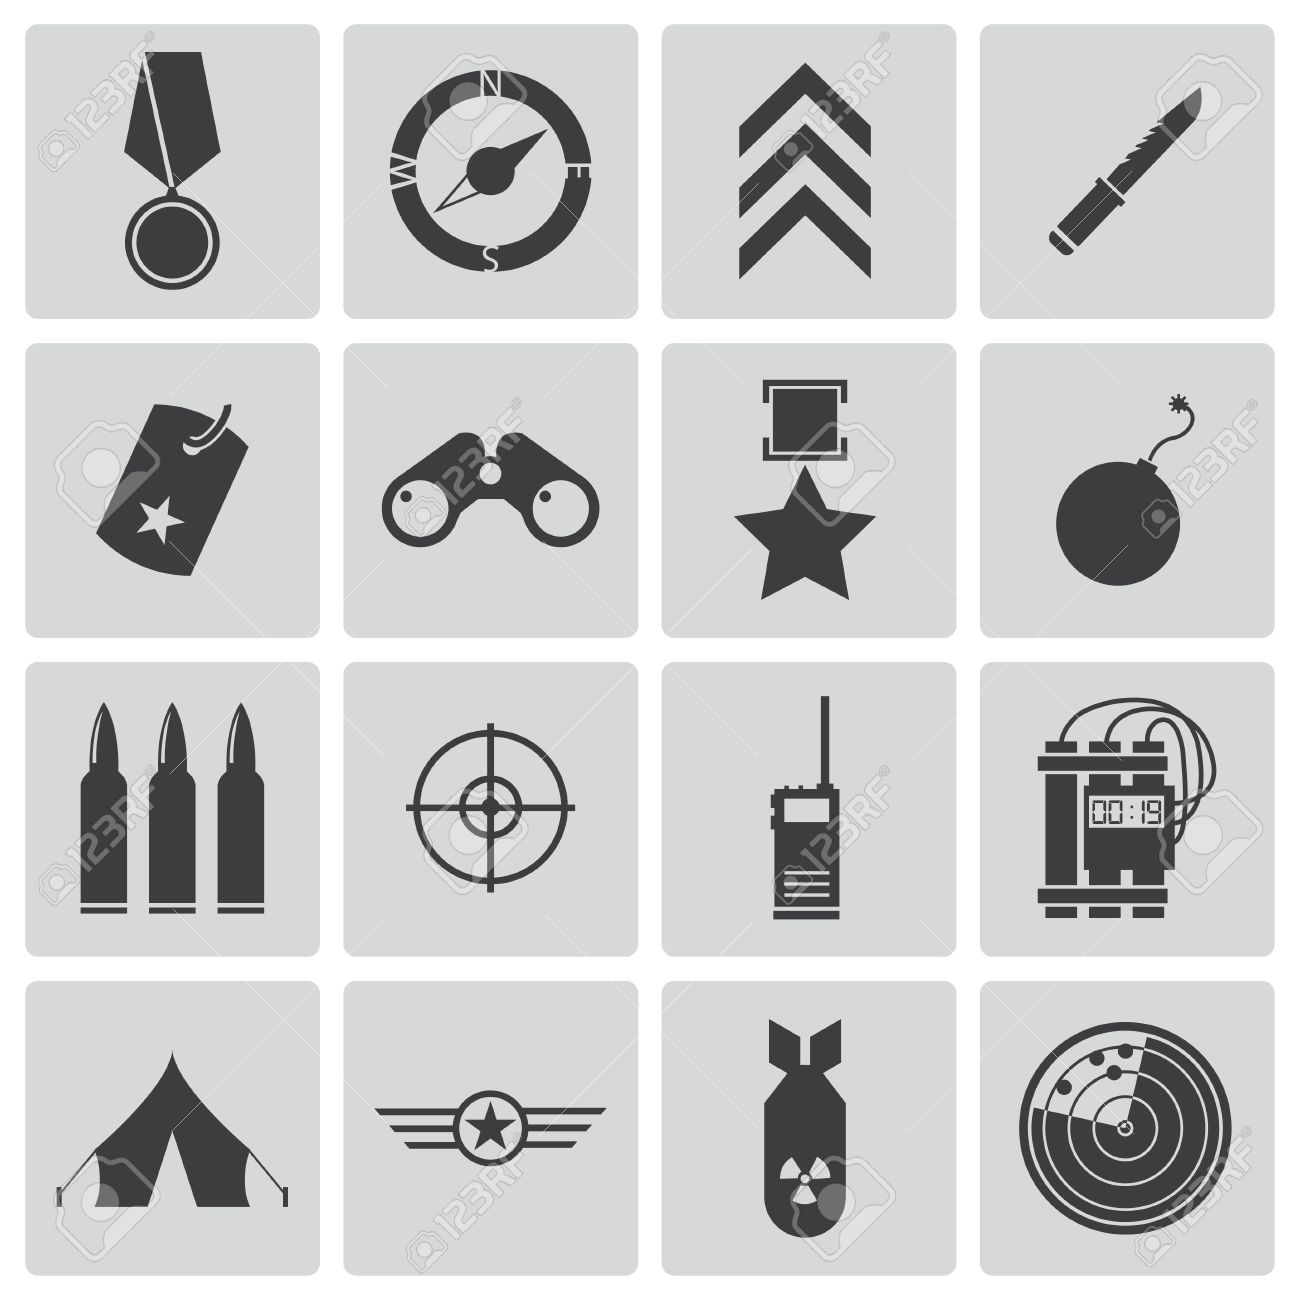 Vector black military icons set - 22069527